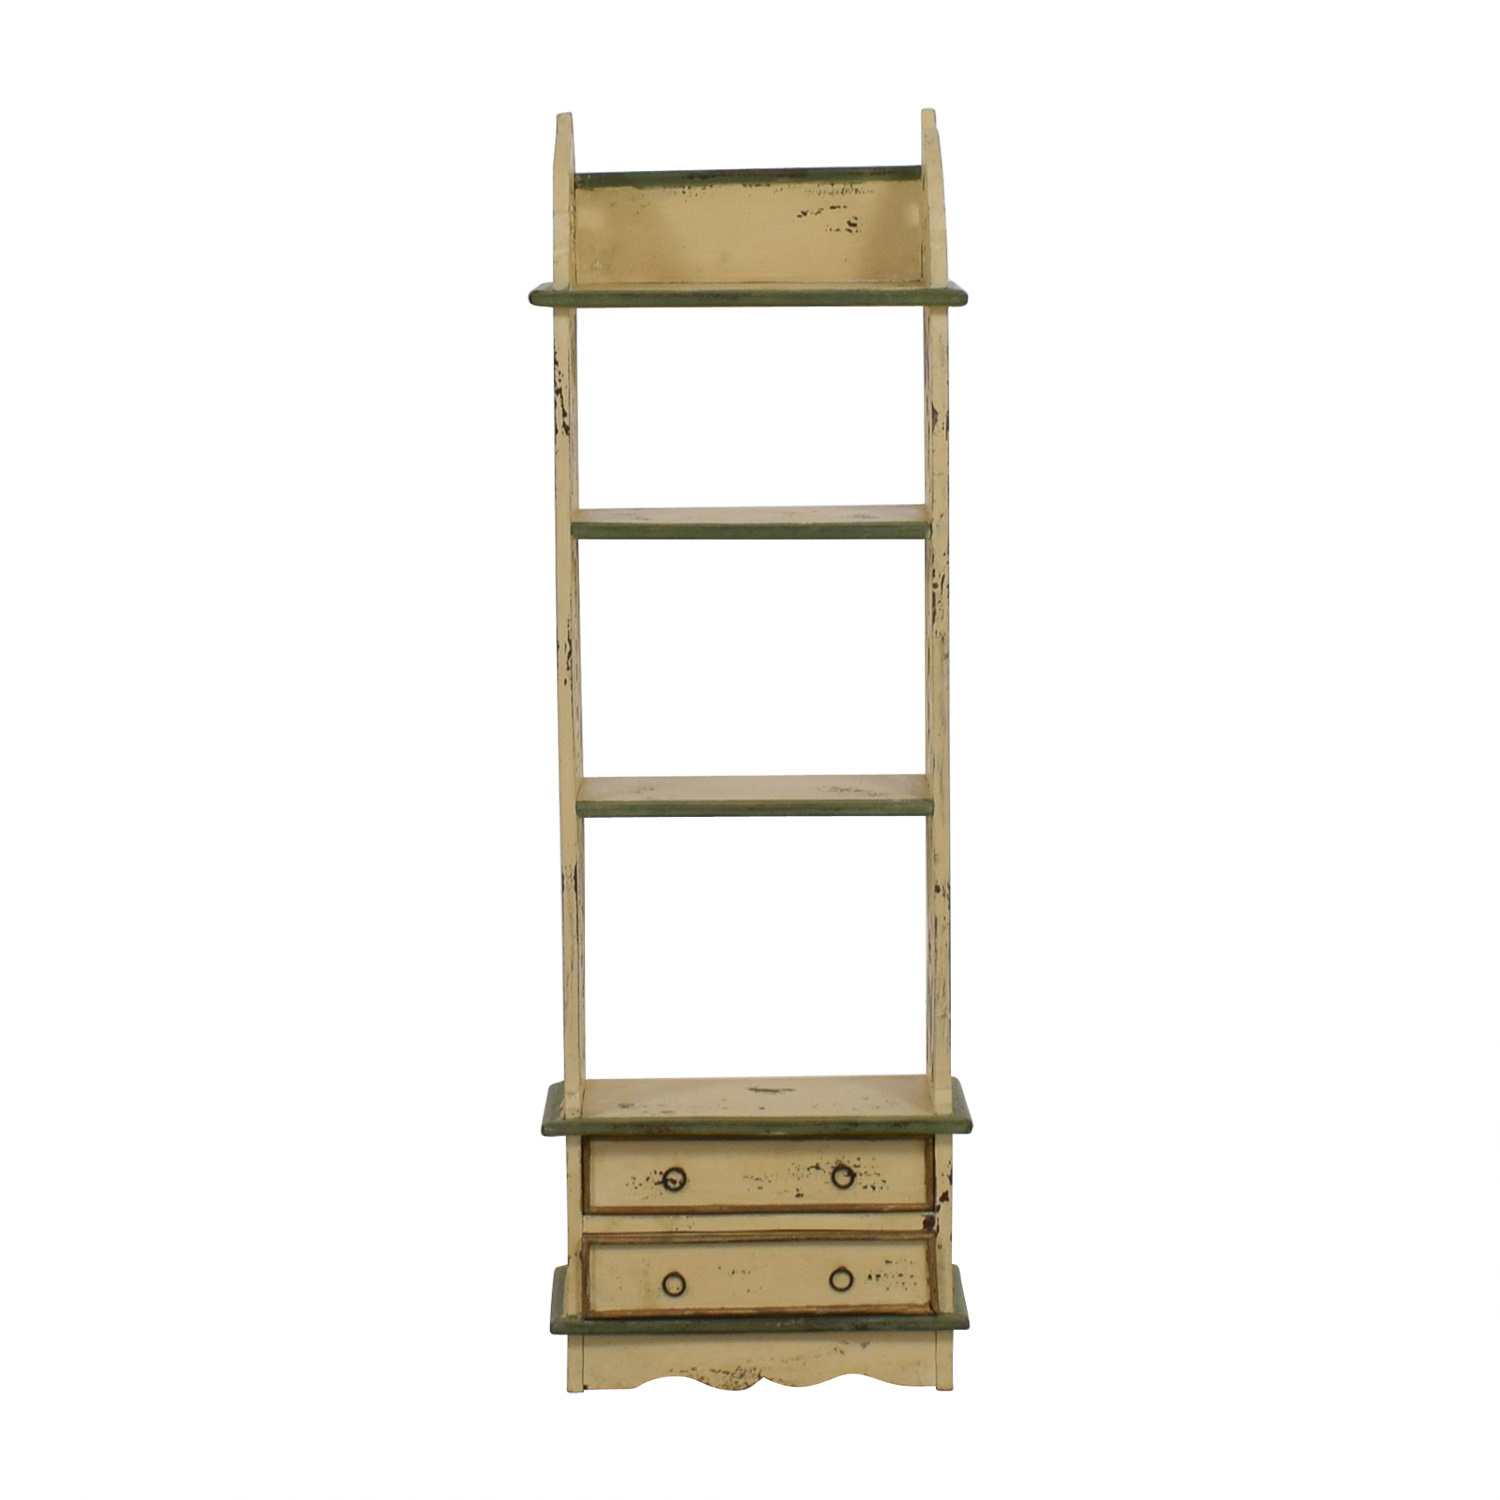 ABC Carpet and Home ABC Carpet and Home Slim Two-Drawer Shelving Unit Cream, Green